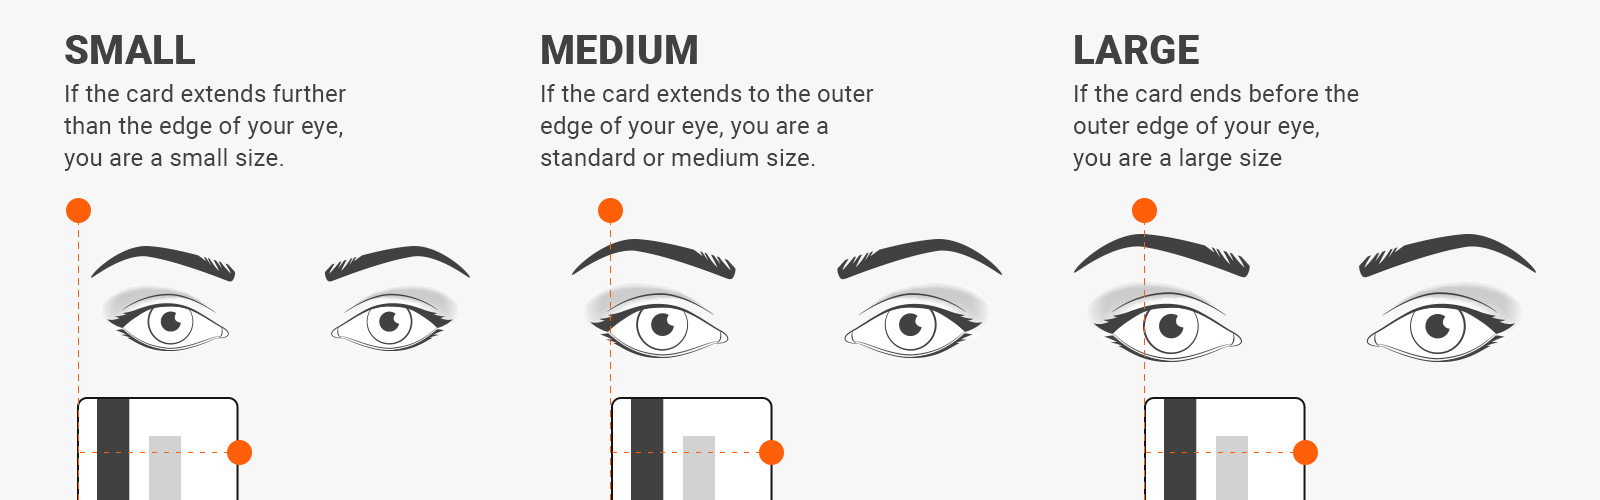 how to read sunglasses measurements - Measure sunglasses size with a credit card